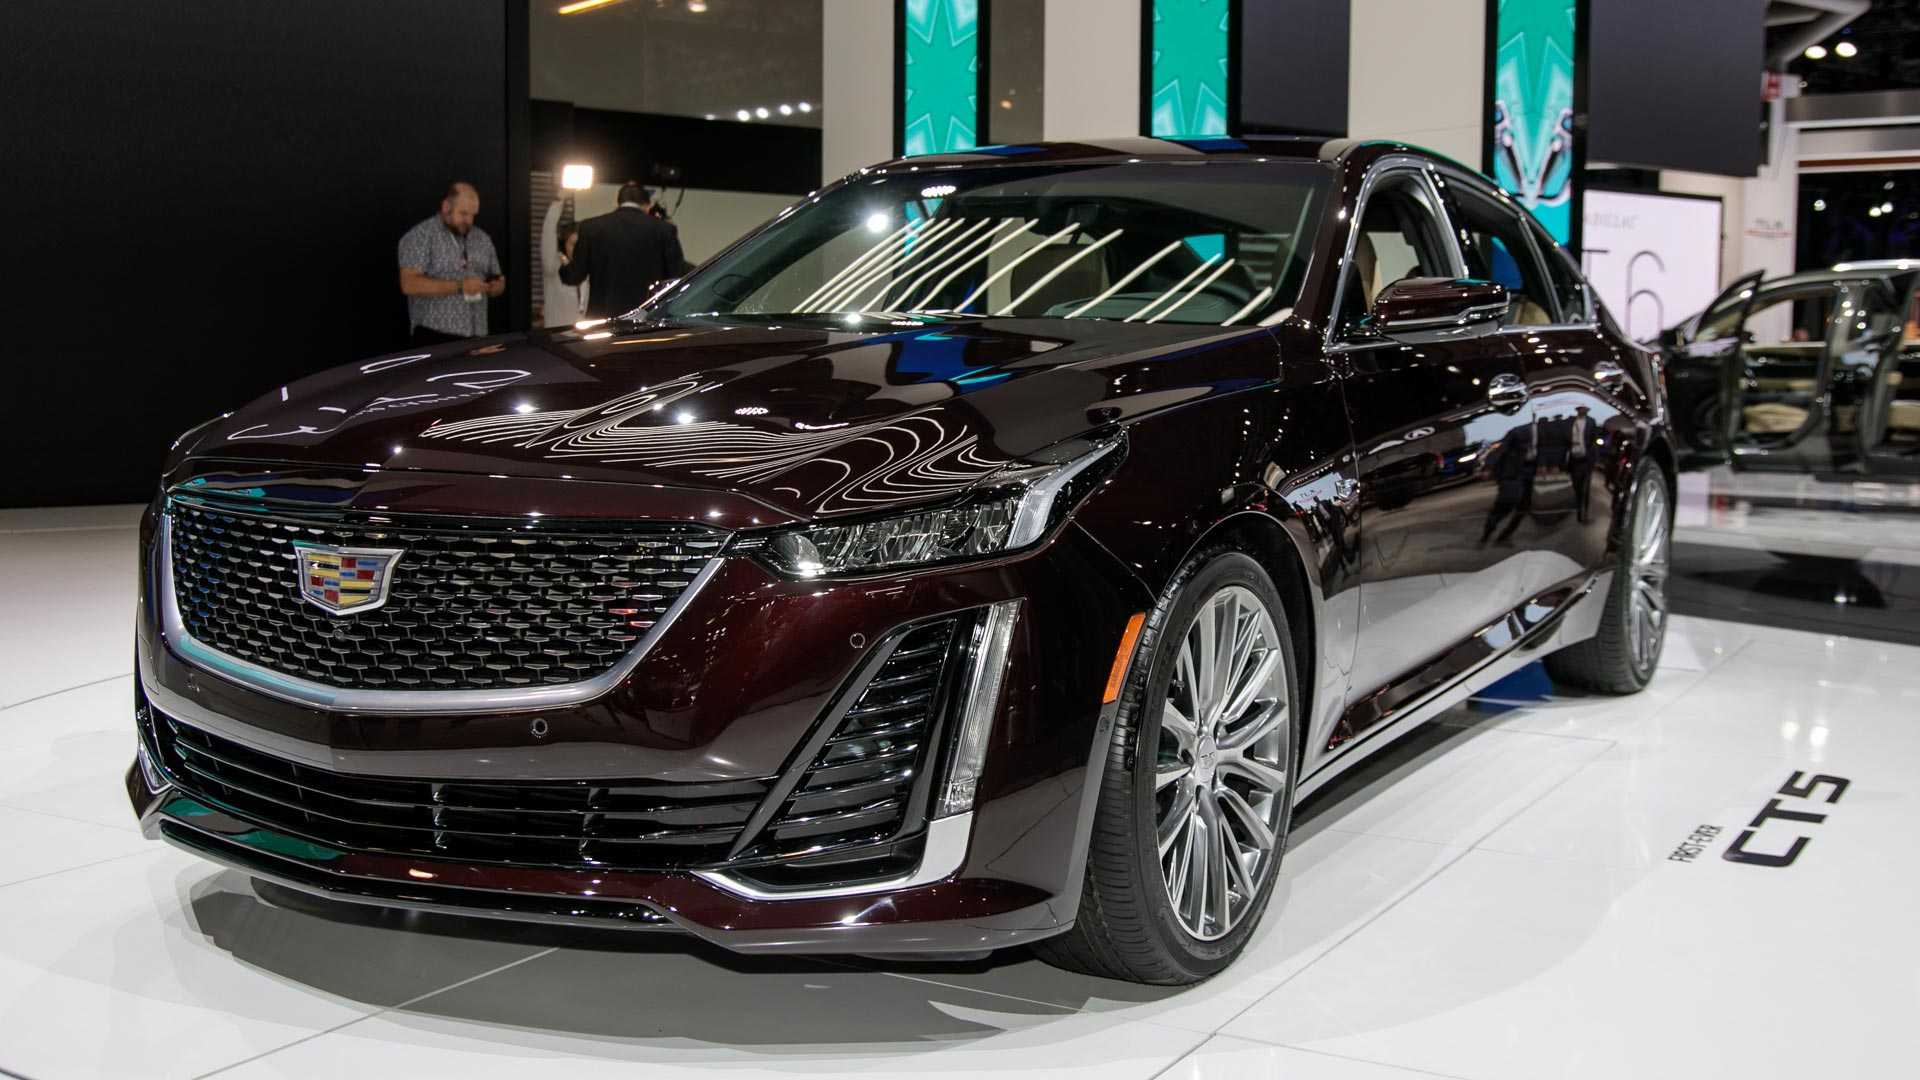 85 The Best 2020 Cadillac Ct5 Interior New Model And Performance